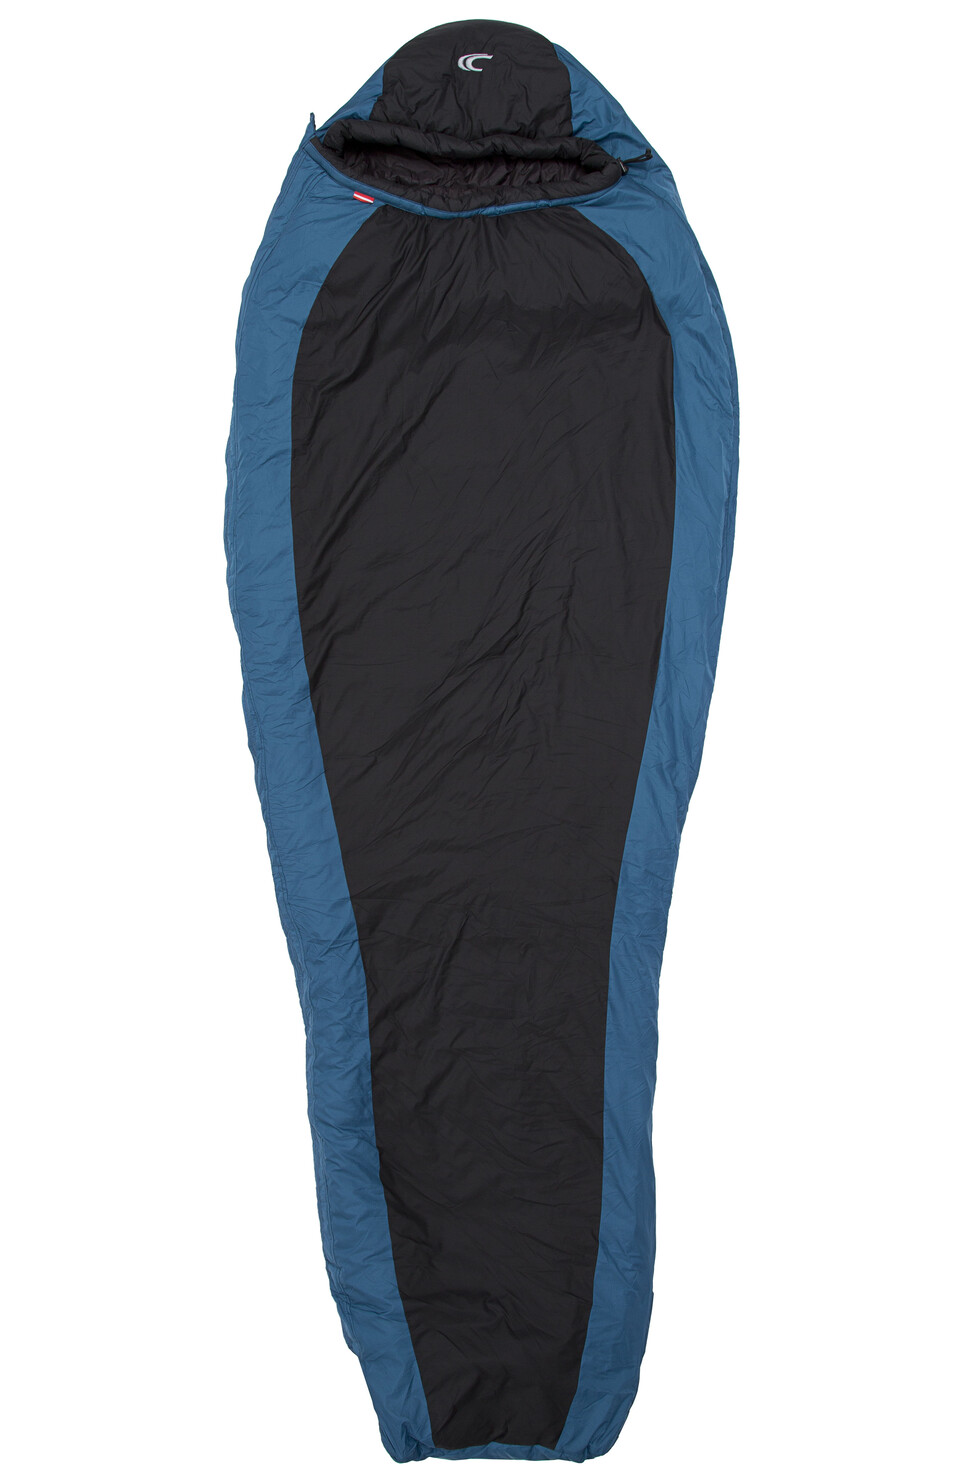 Carinthia Lite 850 Medium blue/black